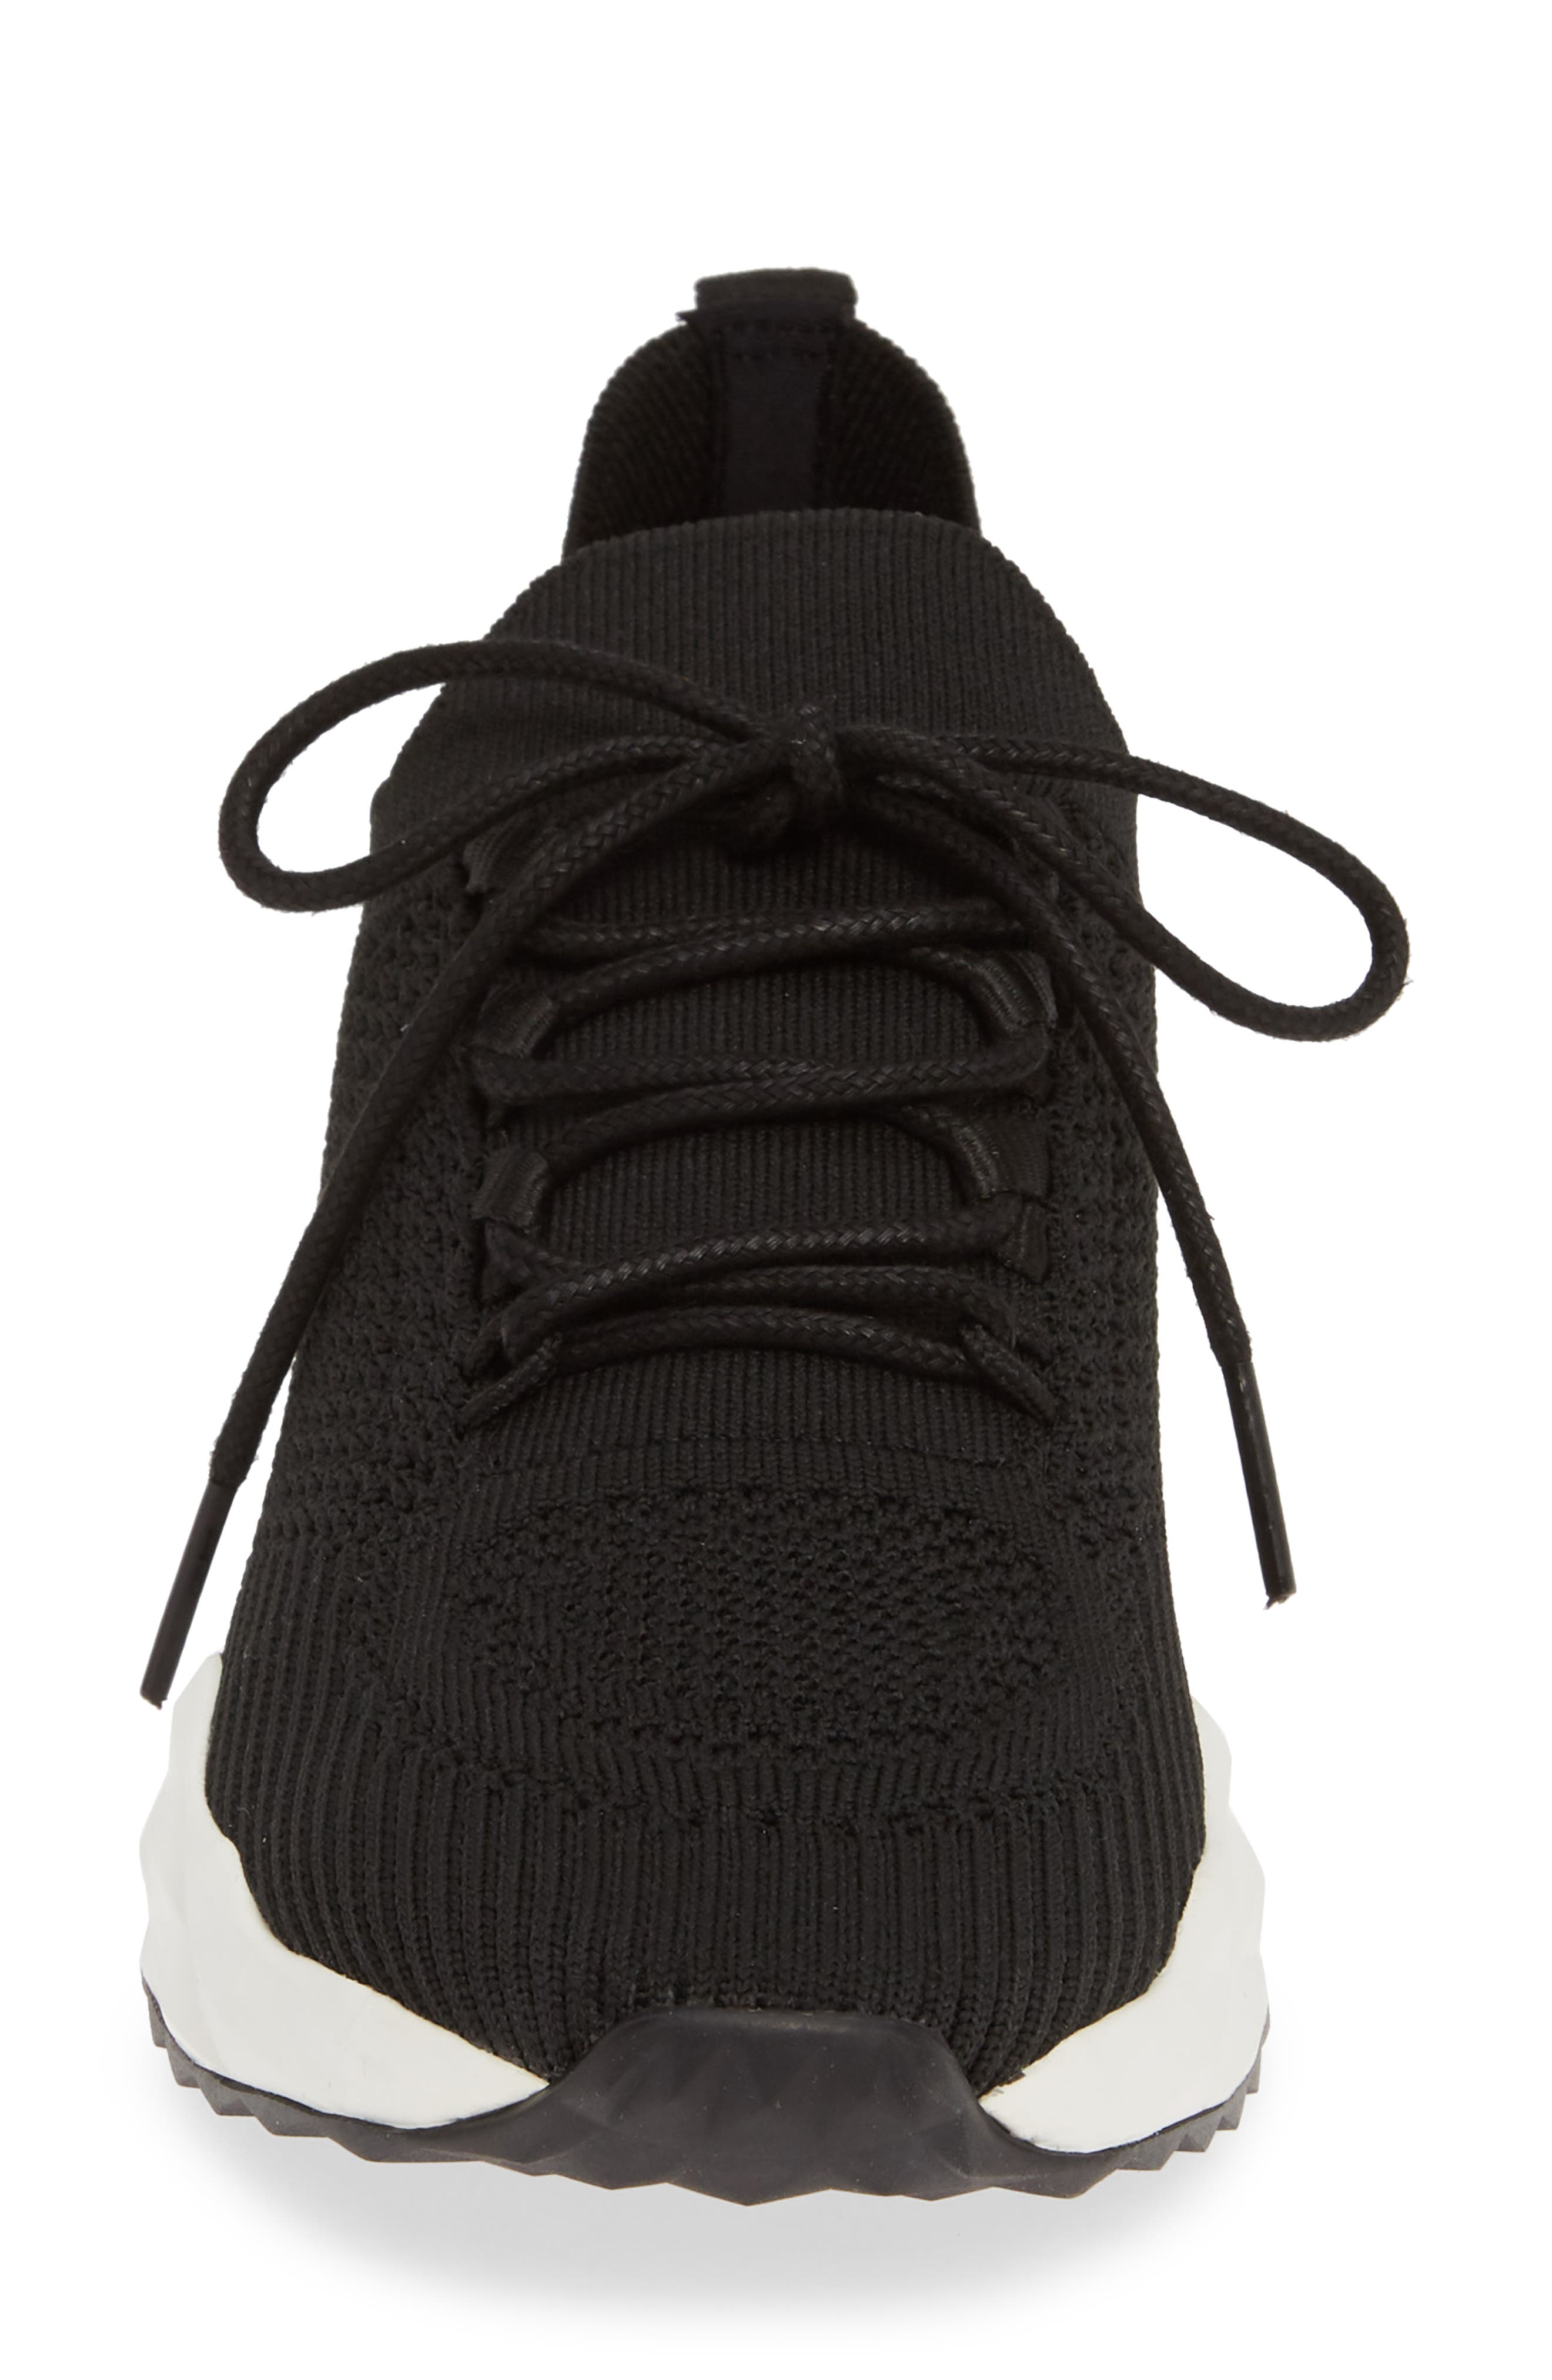 ASH, Knit Skate Sneaker, Alternate thumbnail 4, color, BLACK/ BLACK